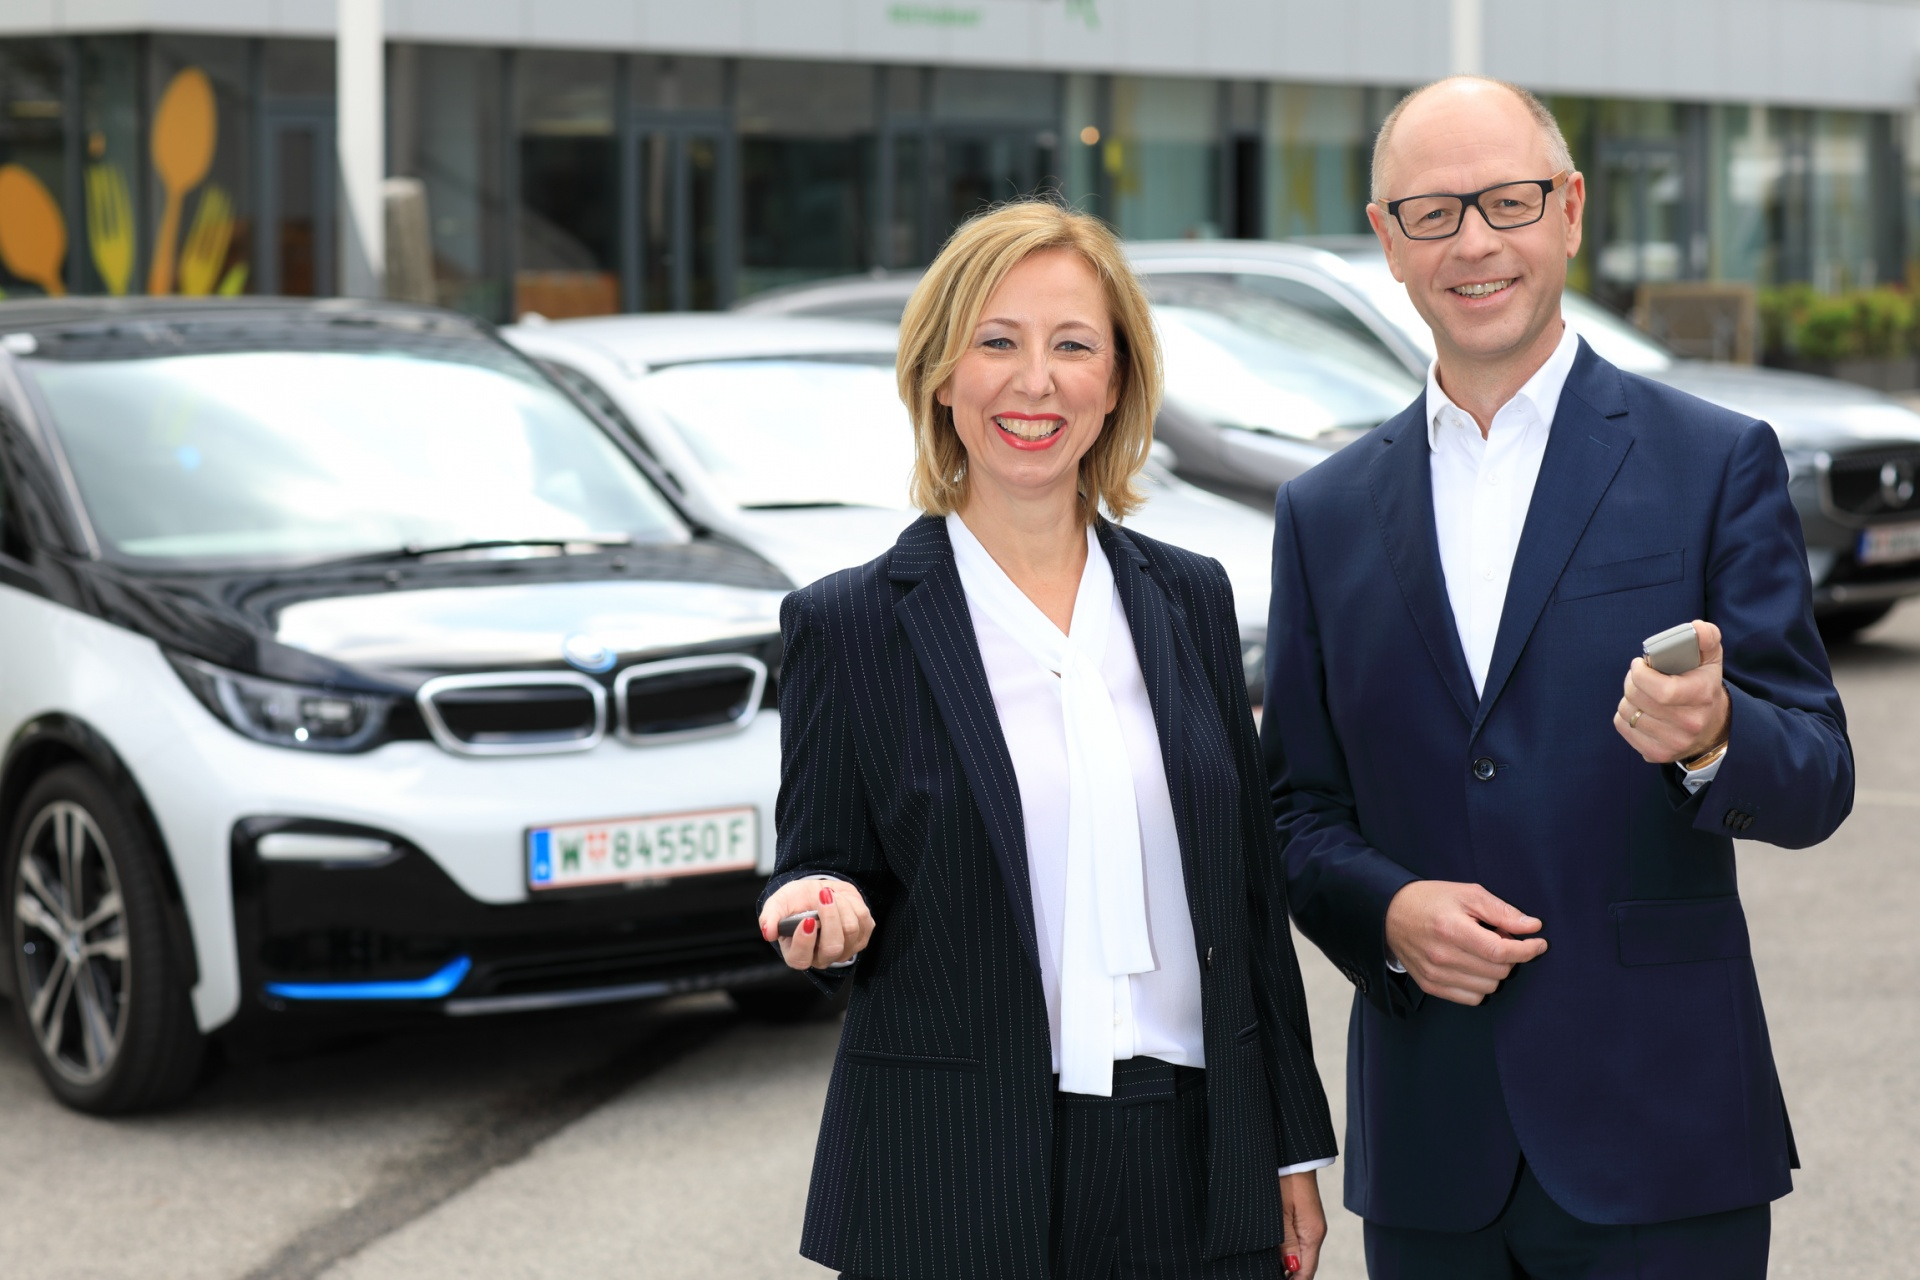 Arval Austria: We care about you. We care about cars.